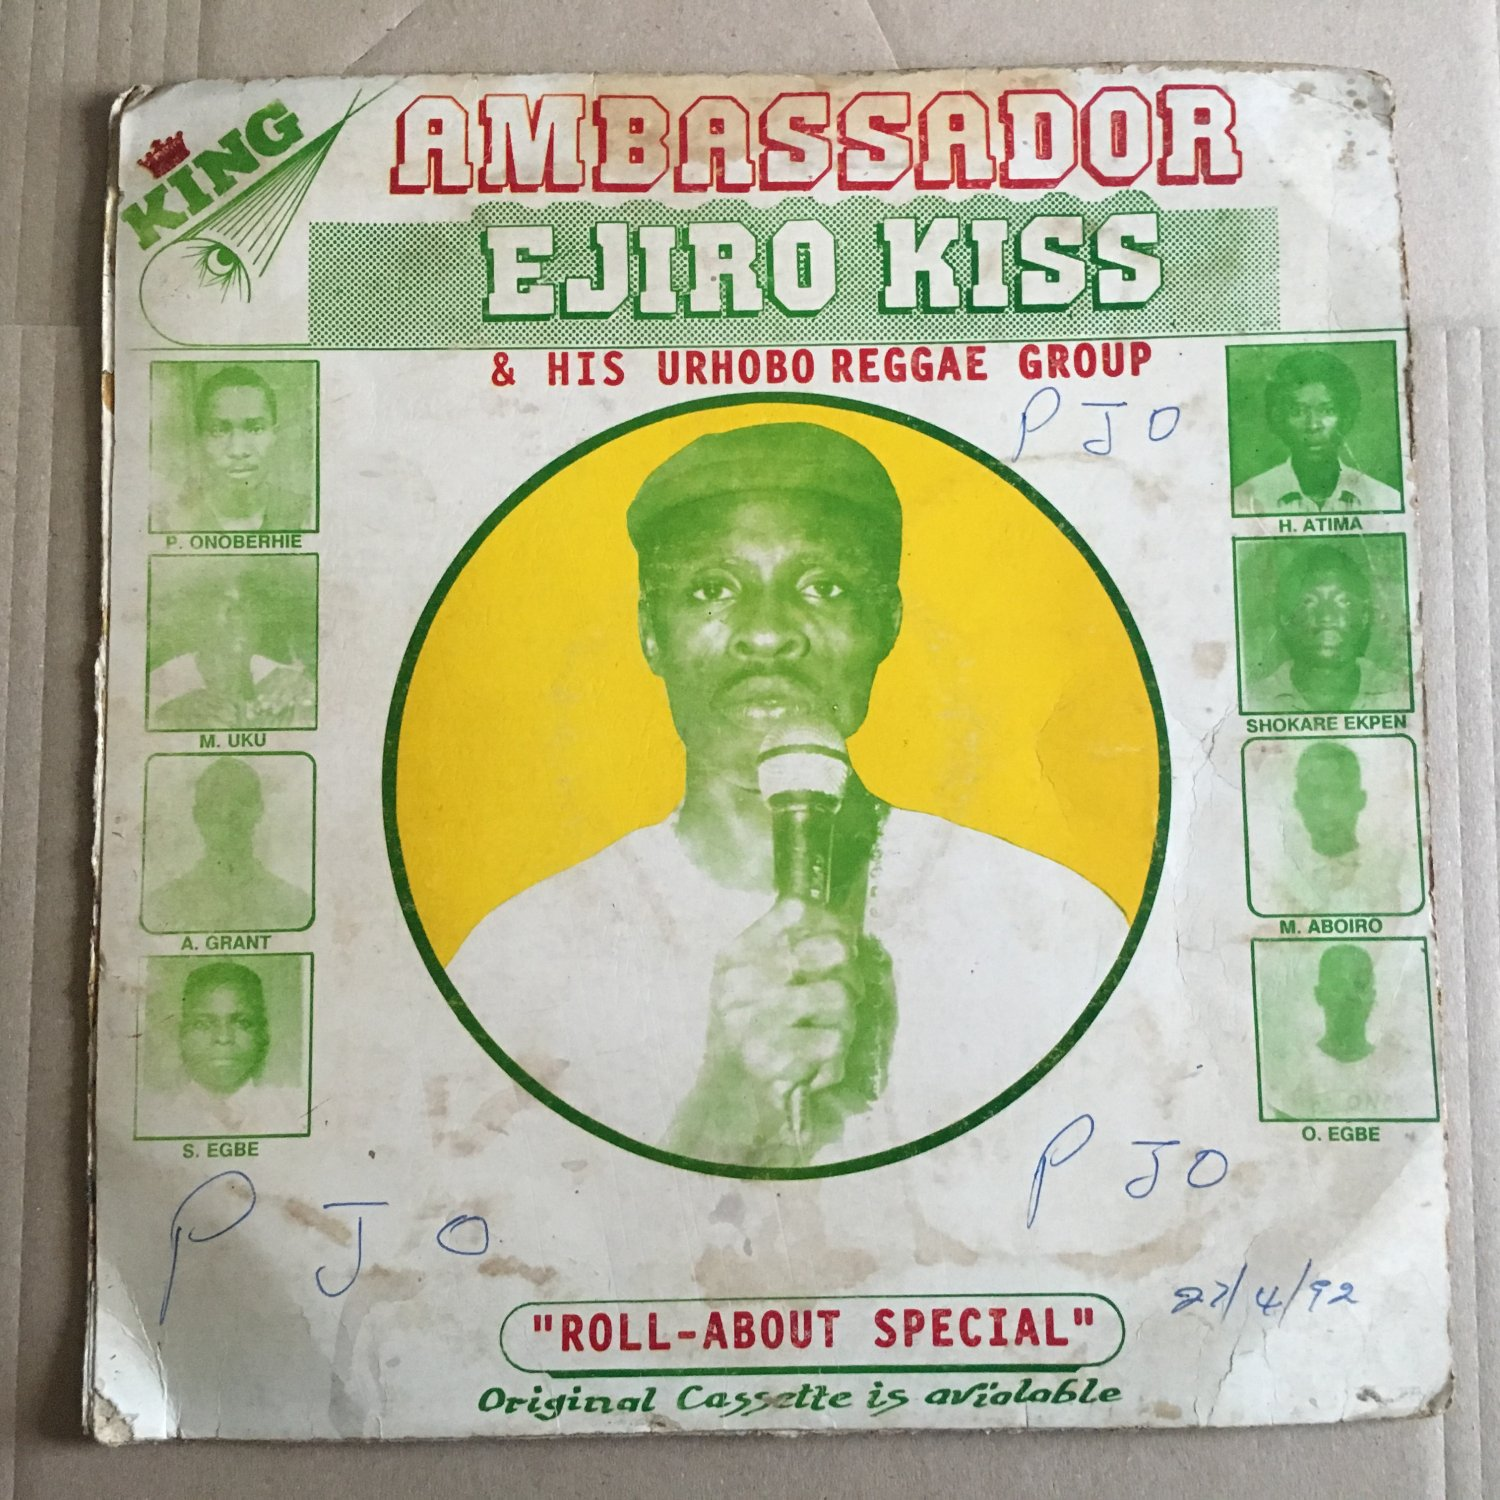 EJIRO KISS & HIS URHOBO REGGAE GROUP LP roll about special NIGERIA mp3 LISTEN